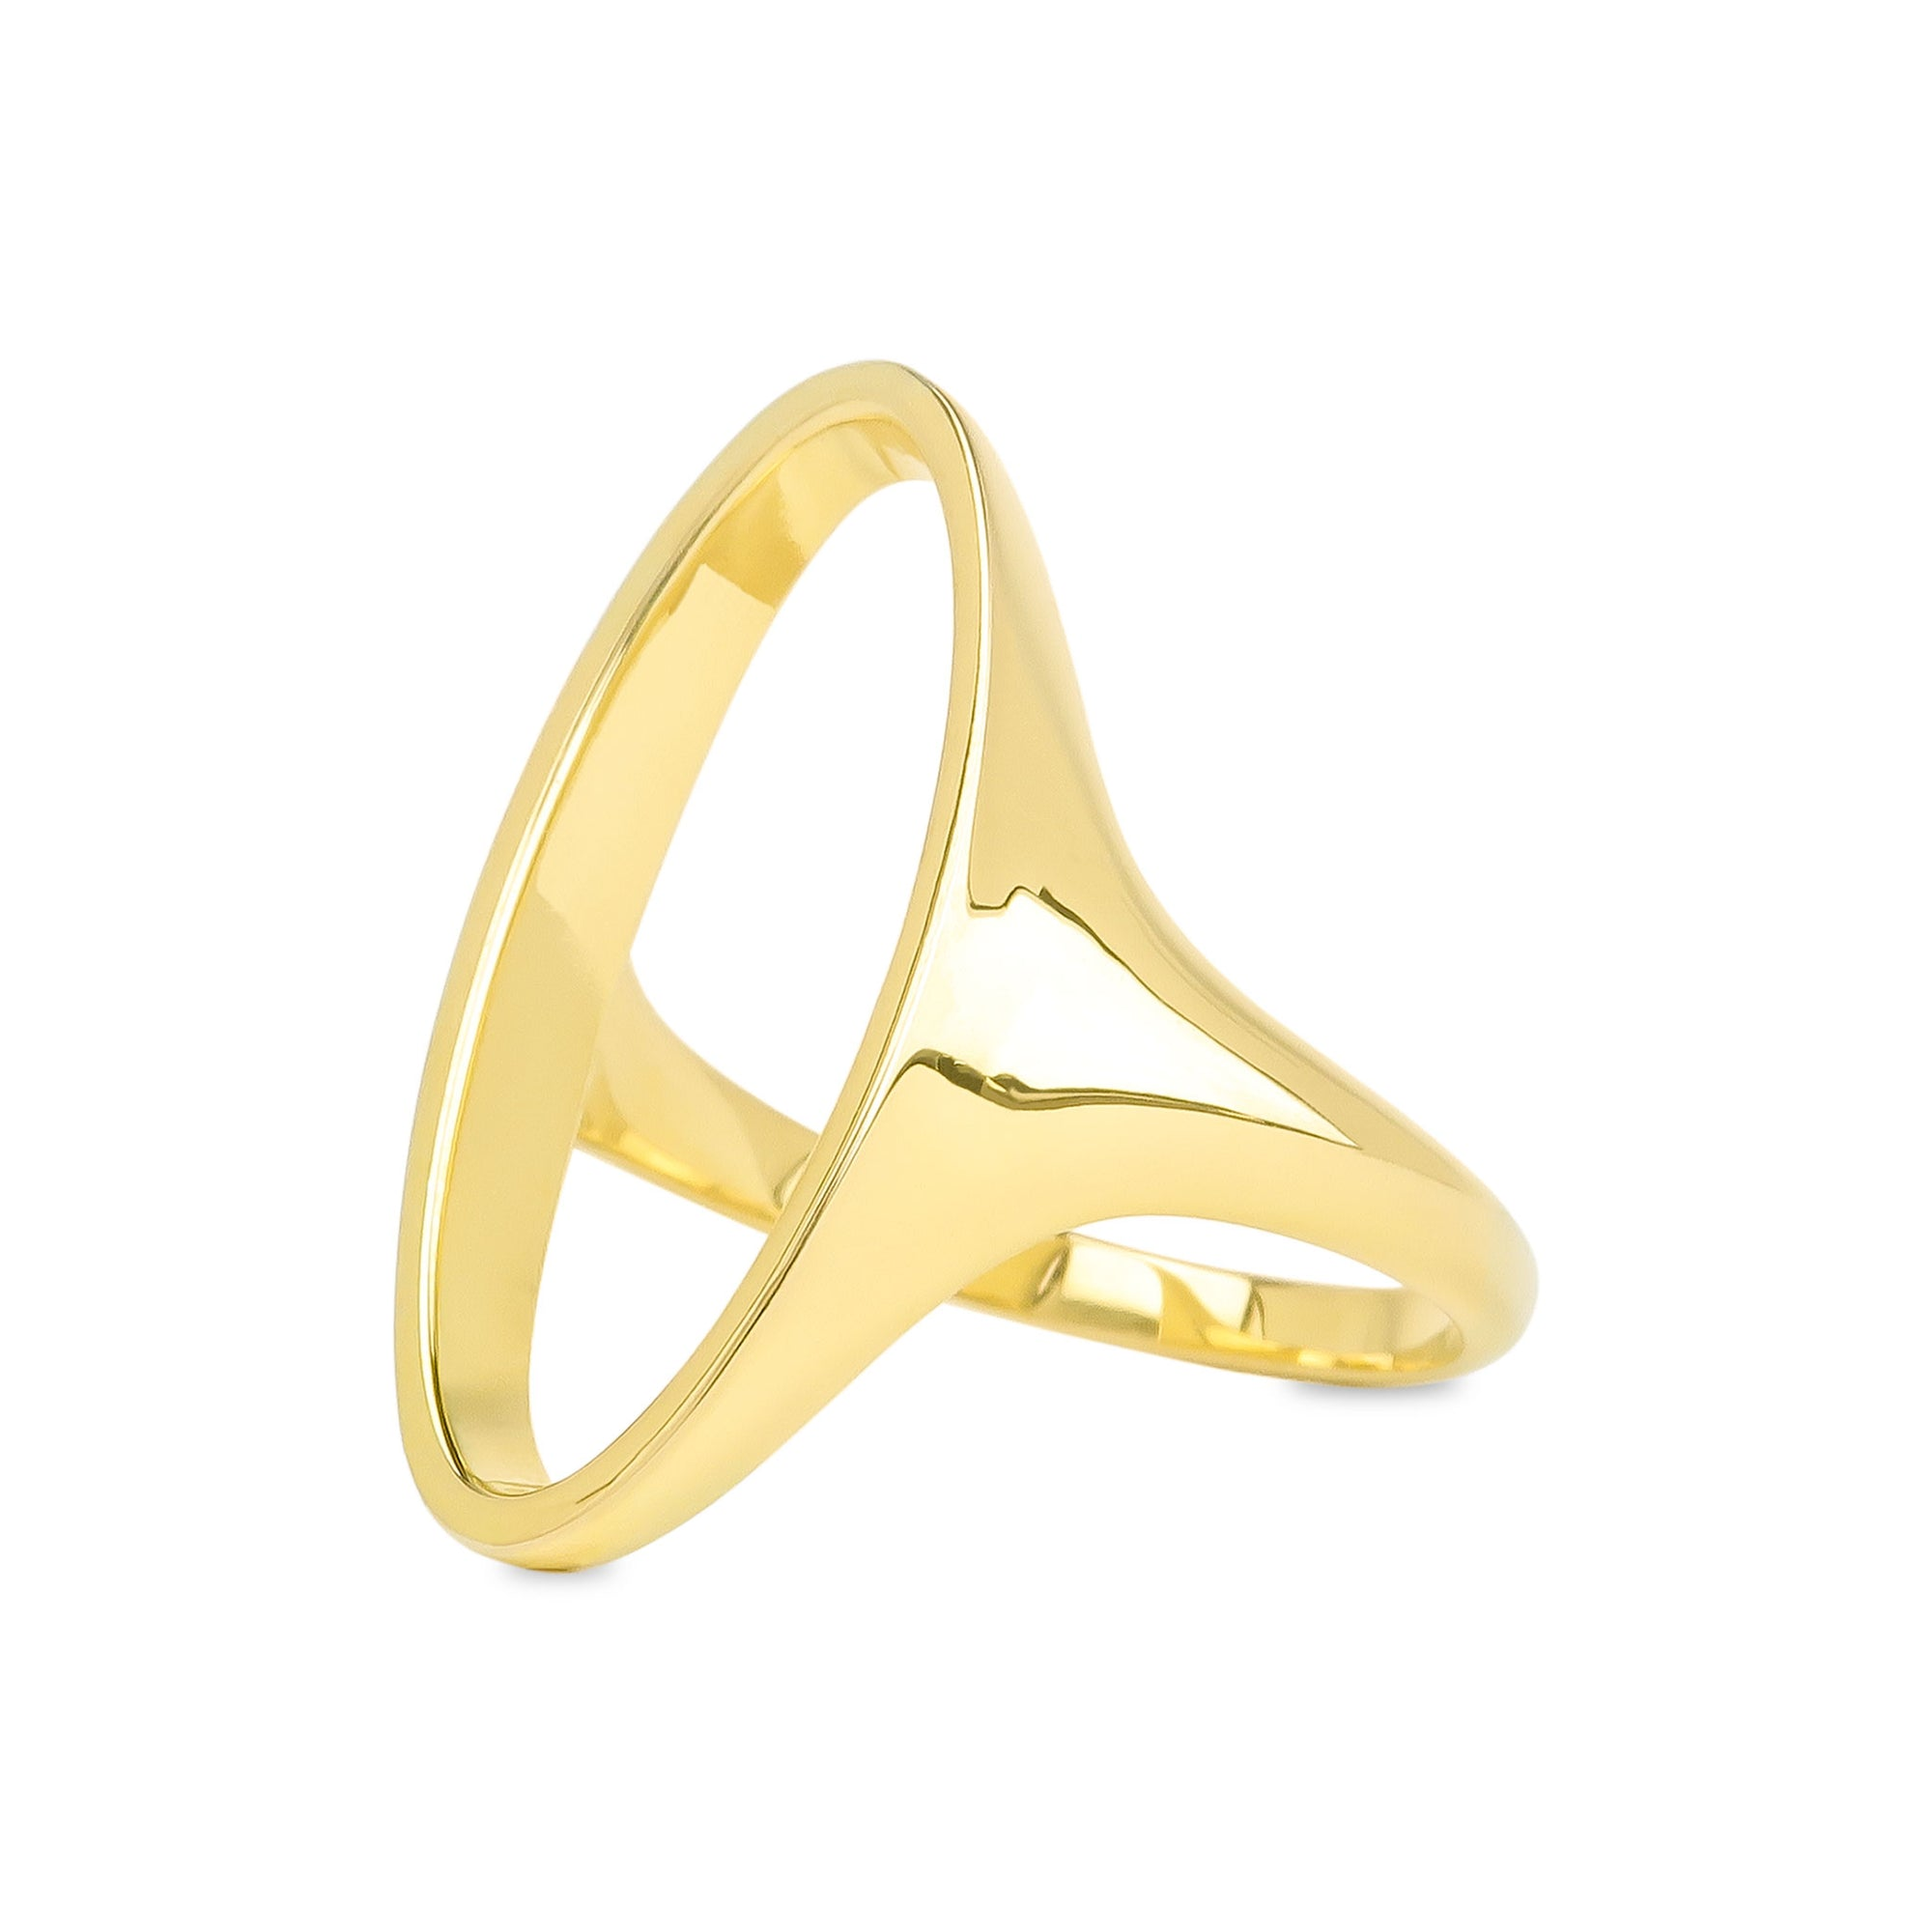 Tahoe Open Oval Signet Ring - Evertess Jewelry